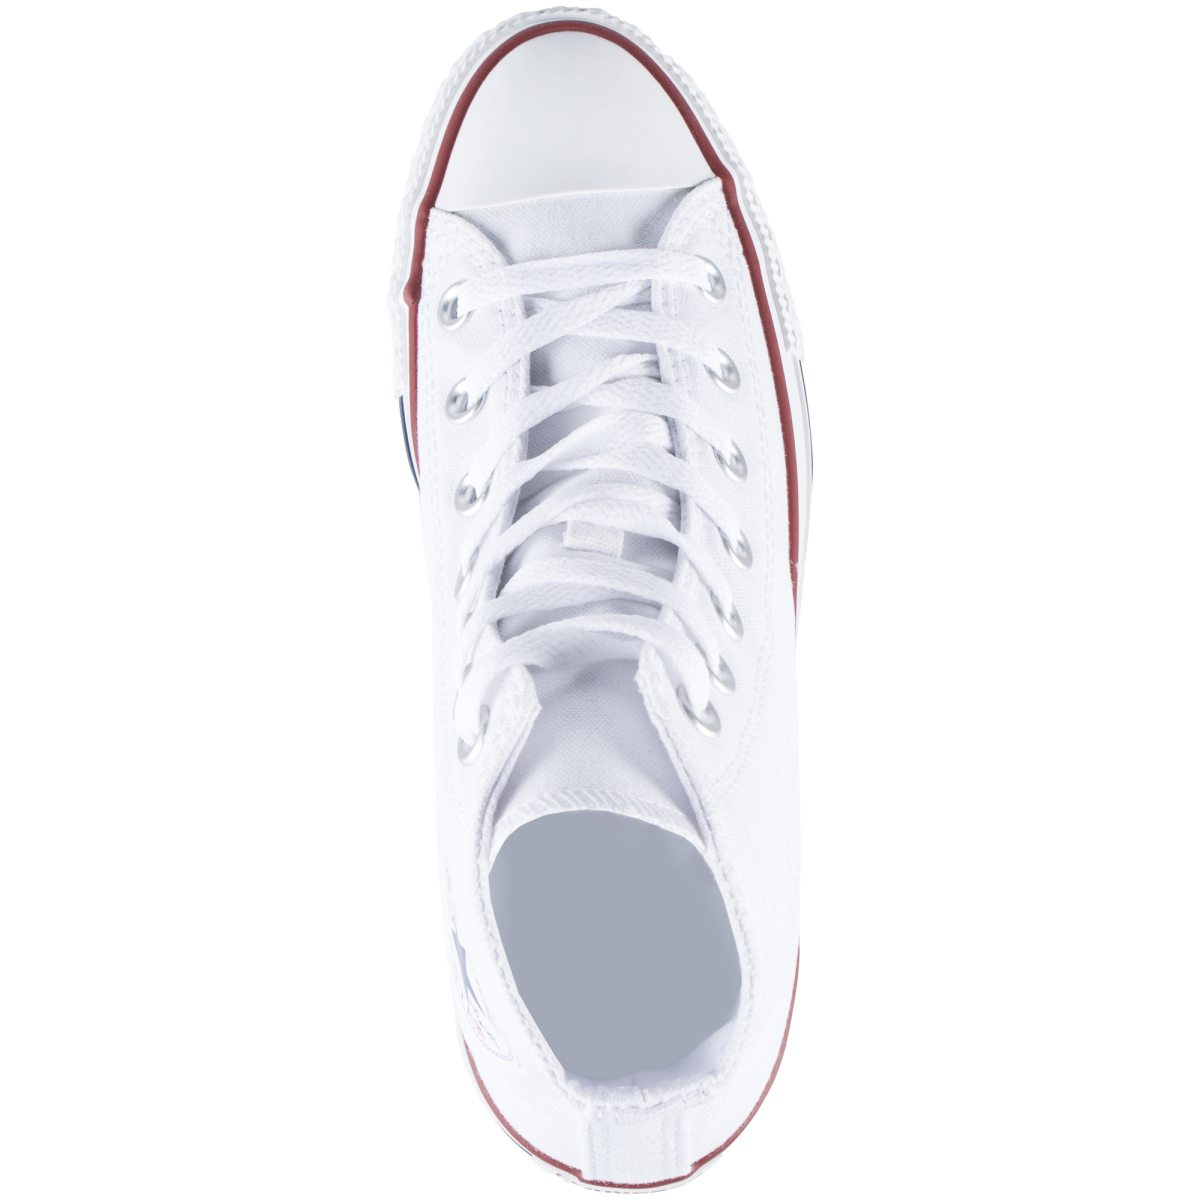 All Star High, fritidssko unisex